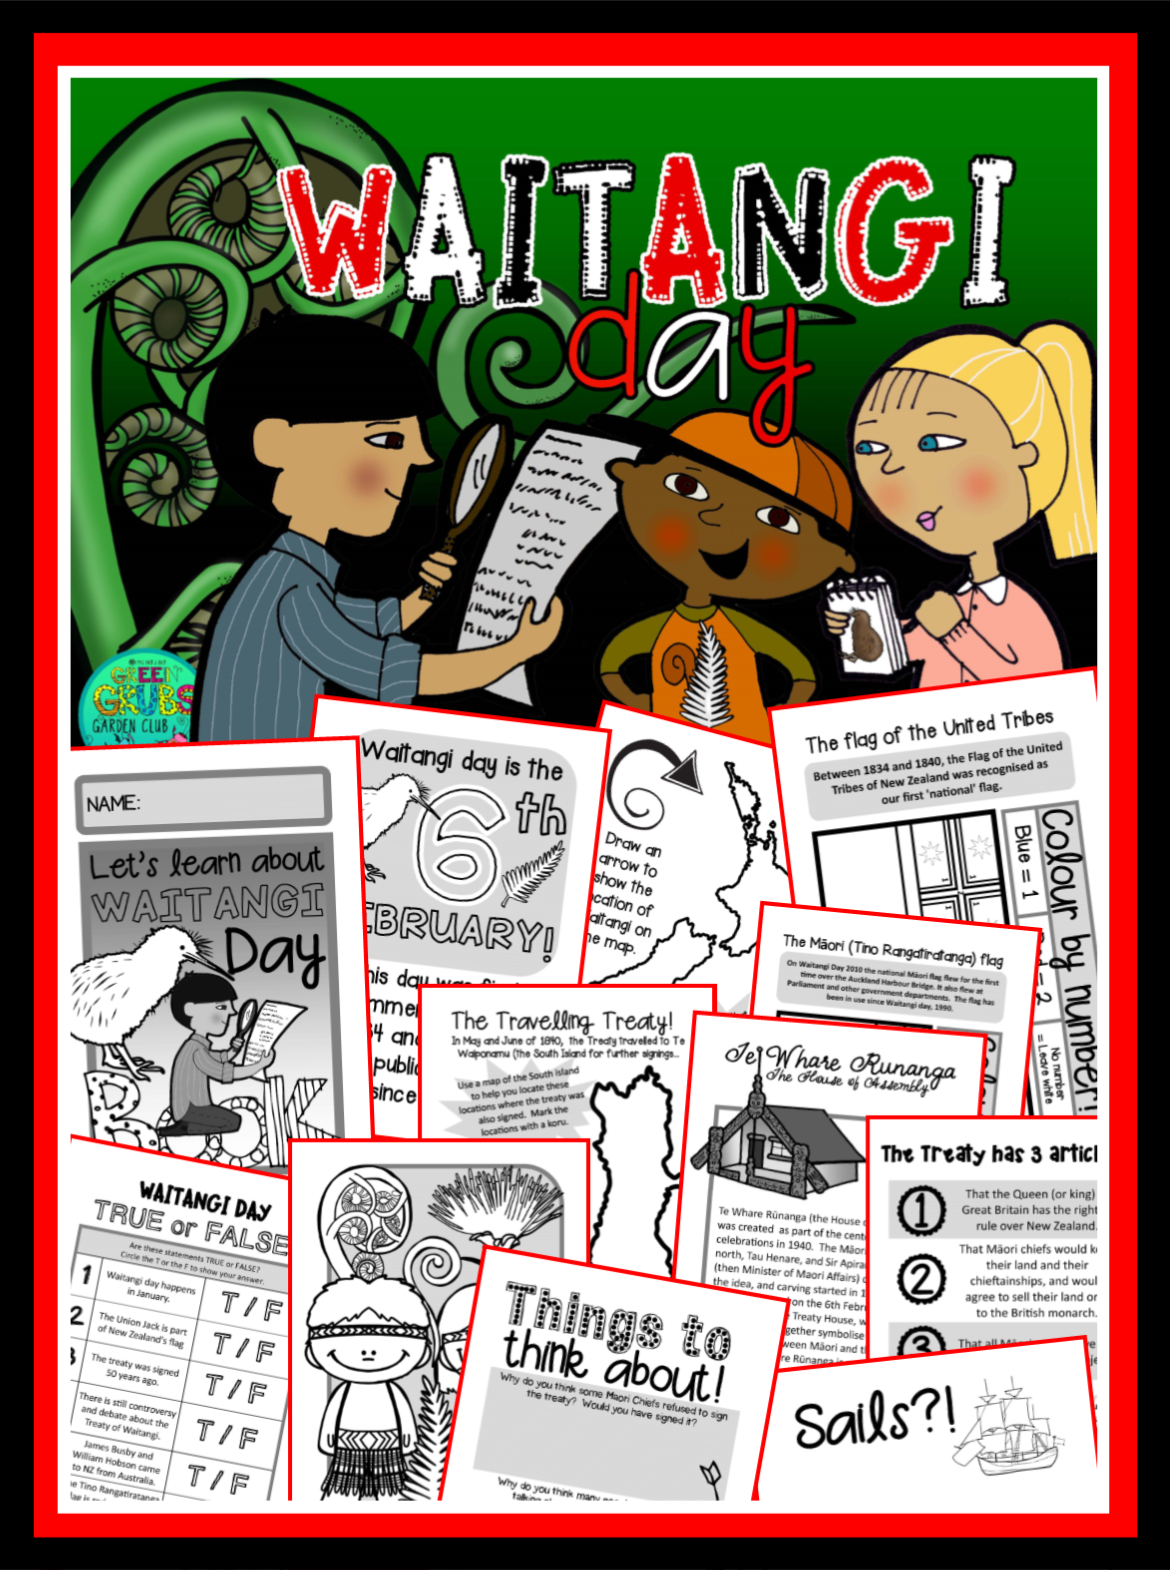 Waitangi Day….Do you love or loathe teaching about it?